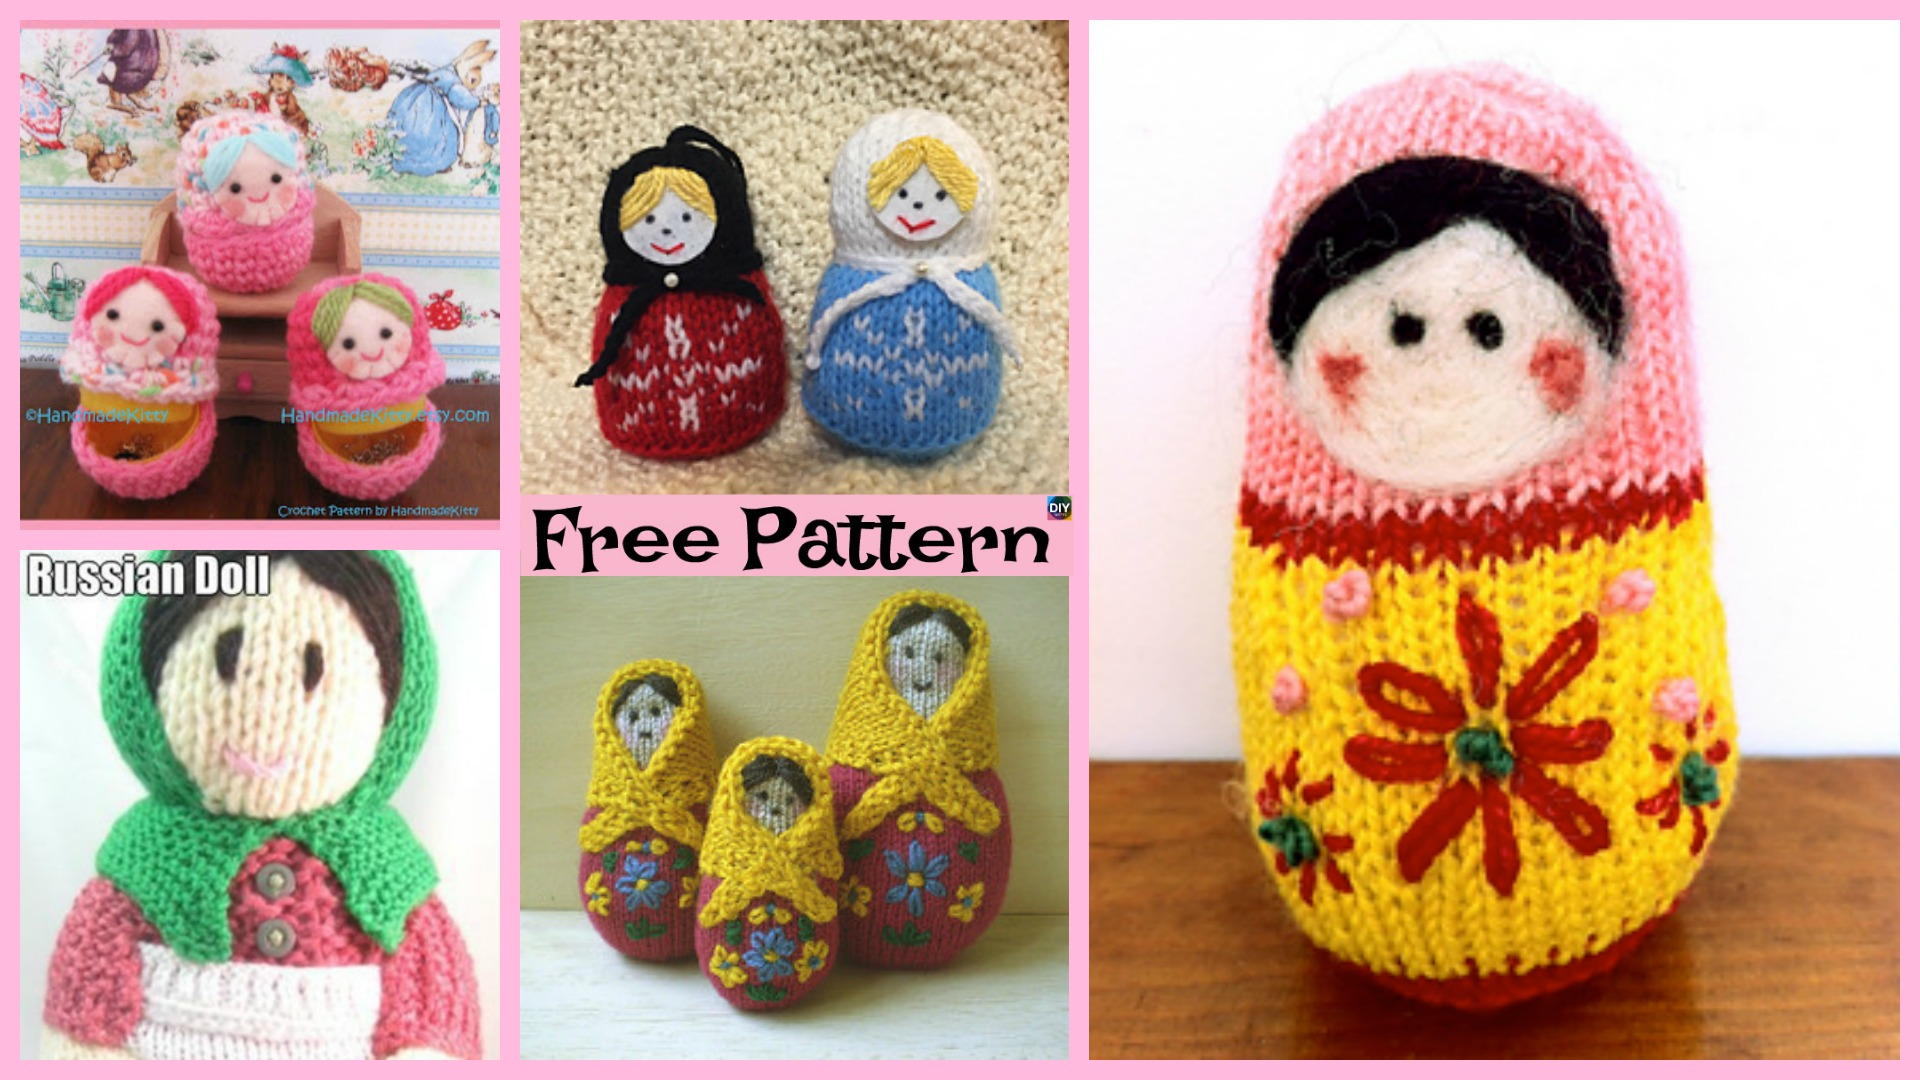 5 Adorable Knit Russian Dolls - Free Patterns - DIY 4 EVER